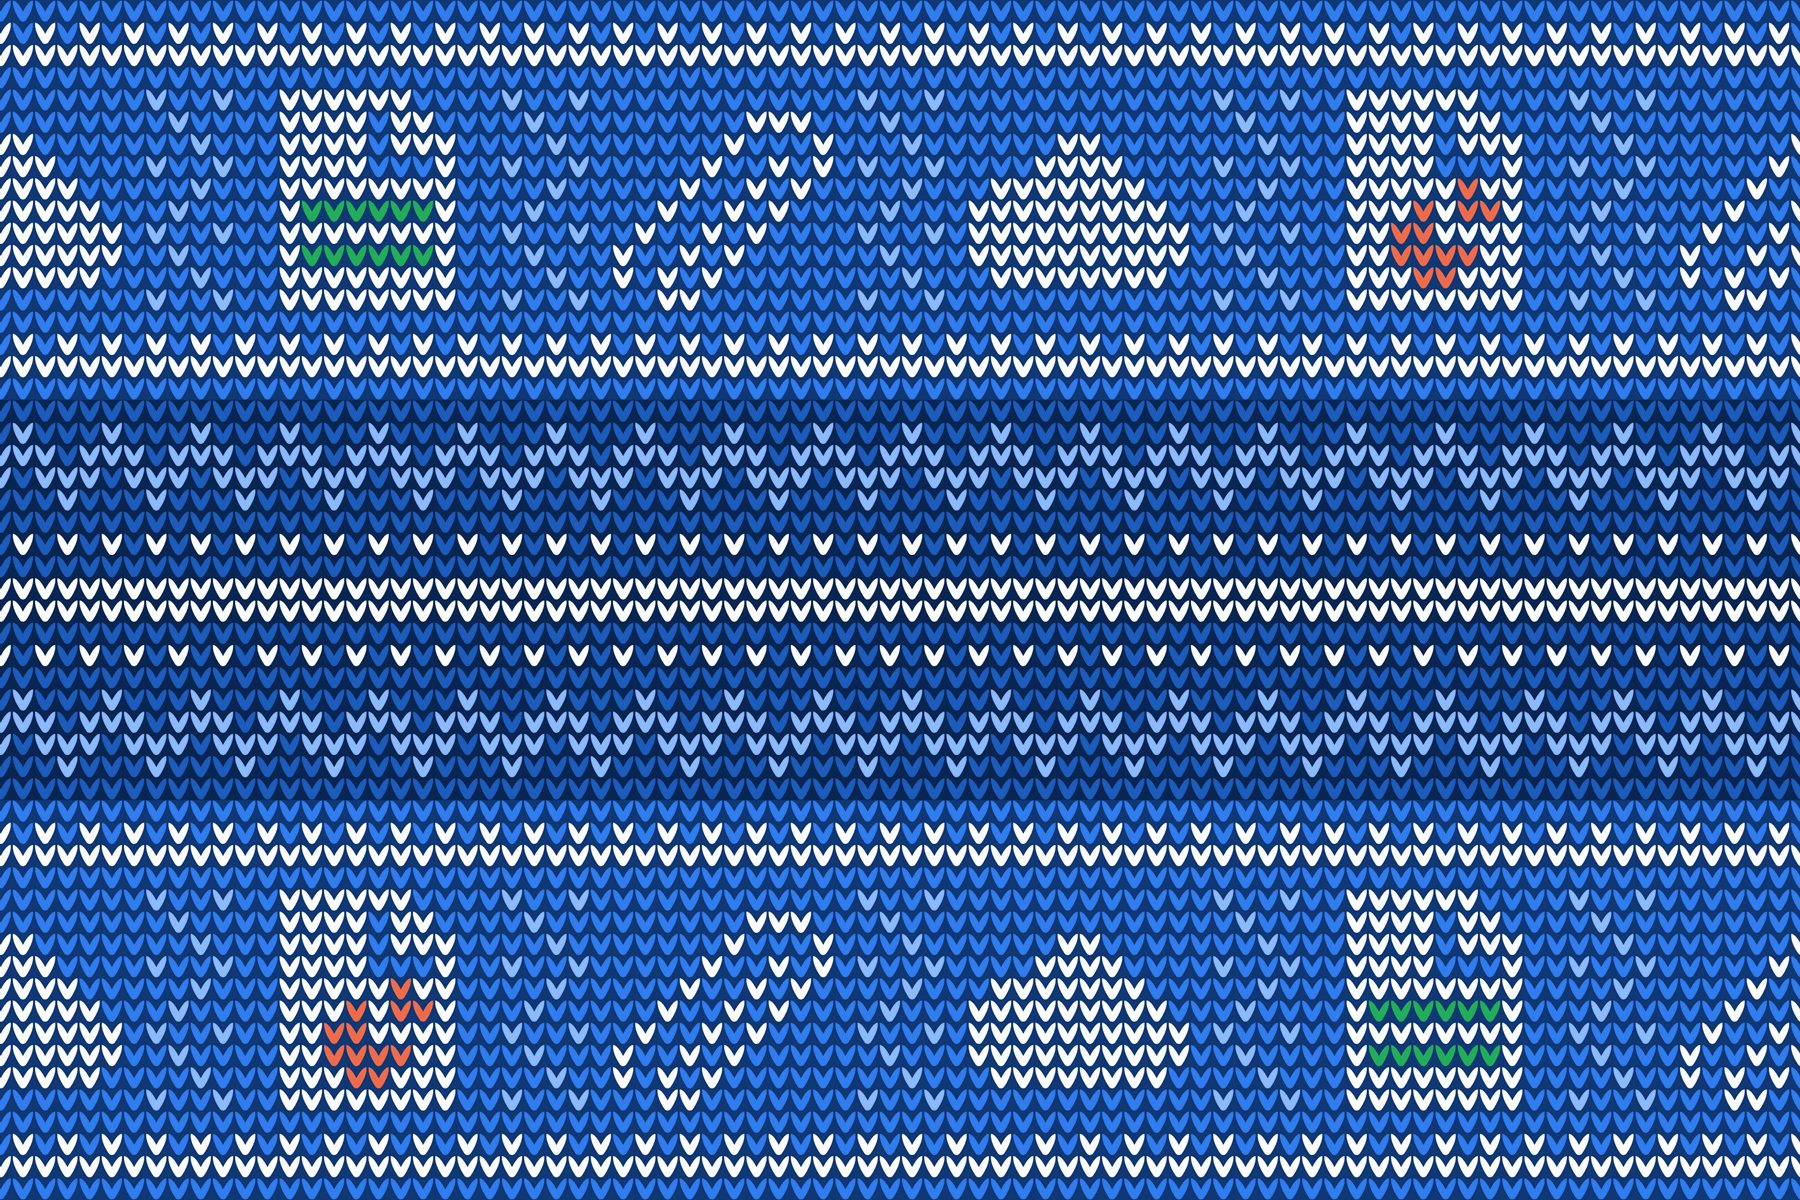 Get Your Free Microsoft Ugly Sweater Wallpaper Mspoweruser